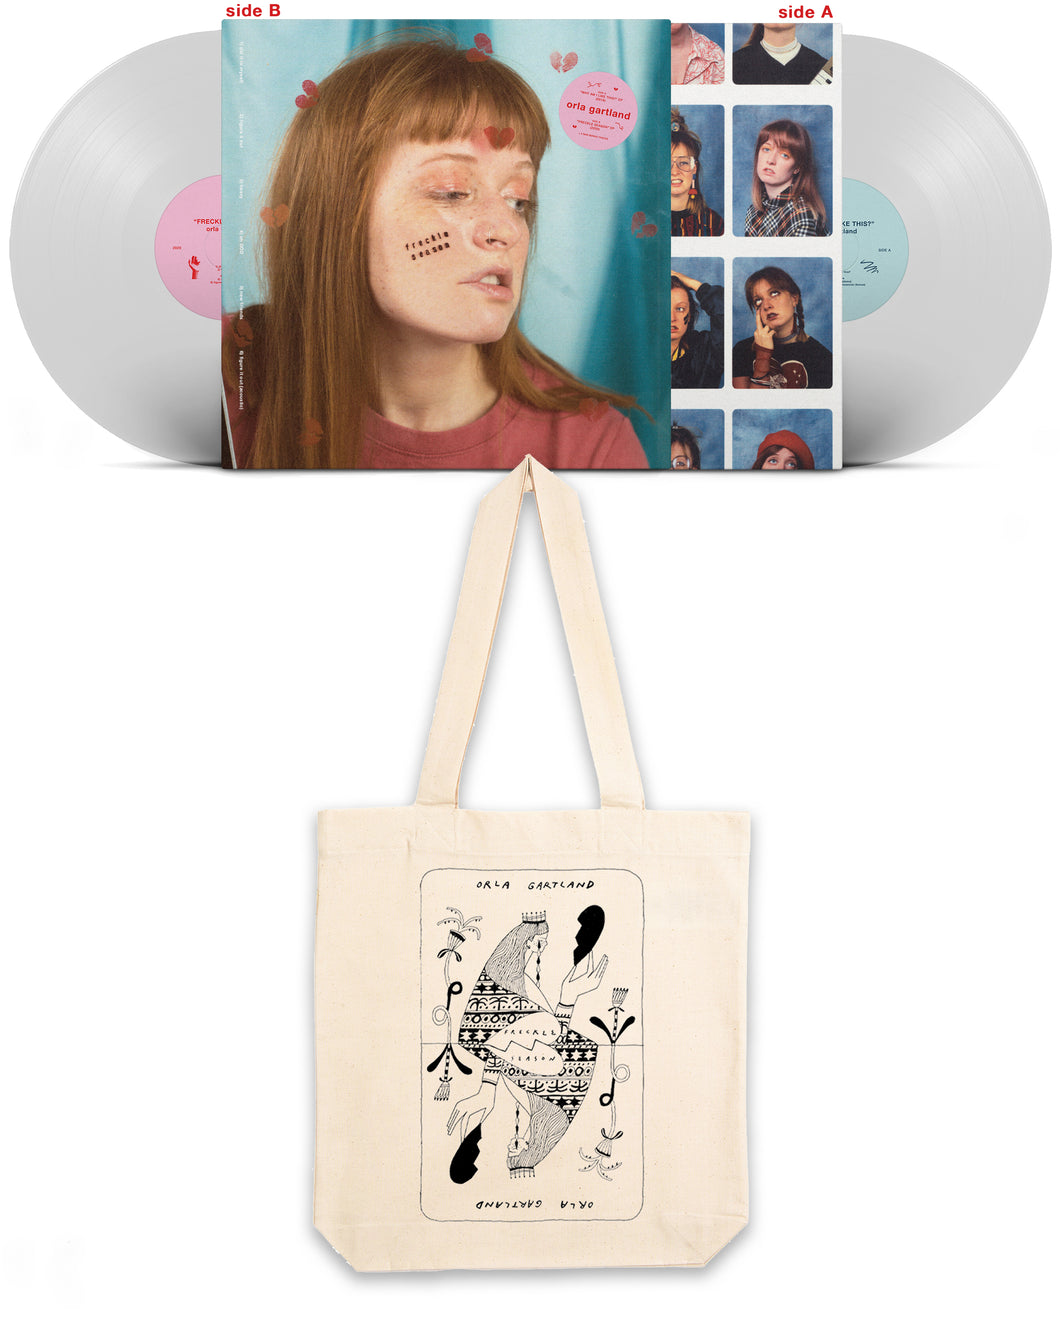 BUNDLE: vinyl + tote bag